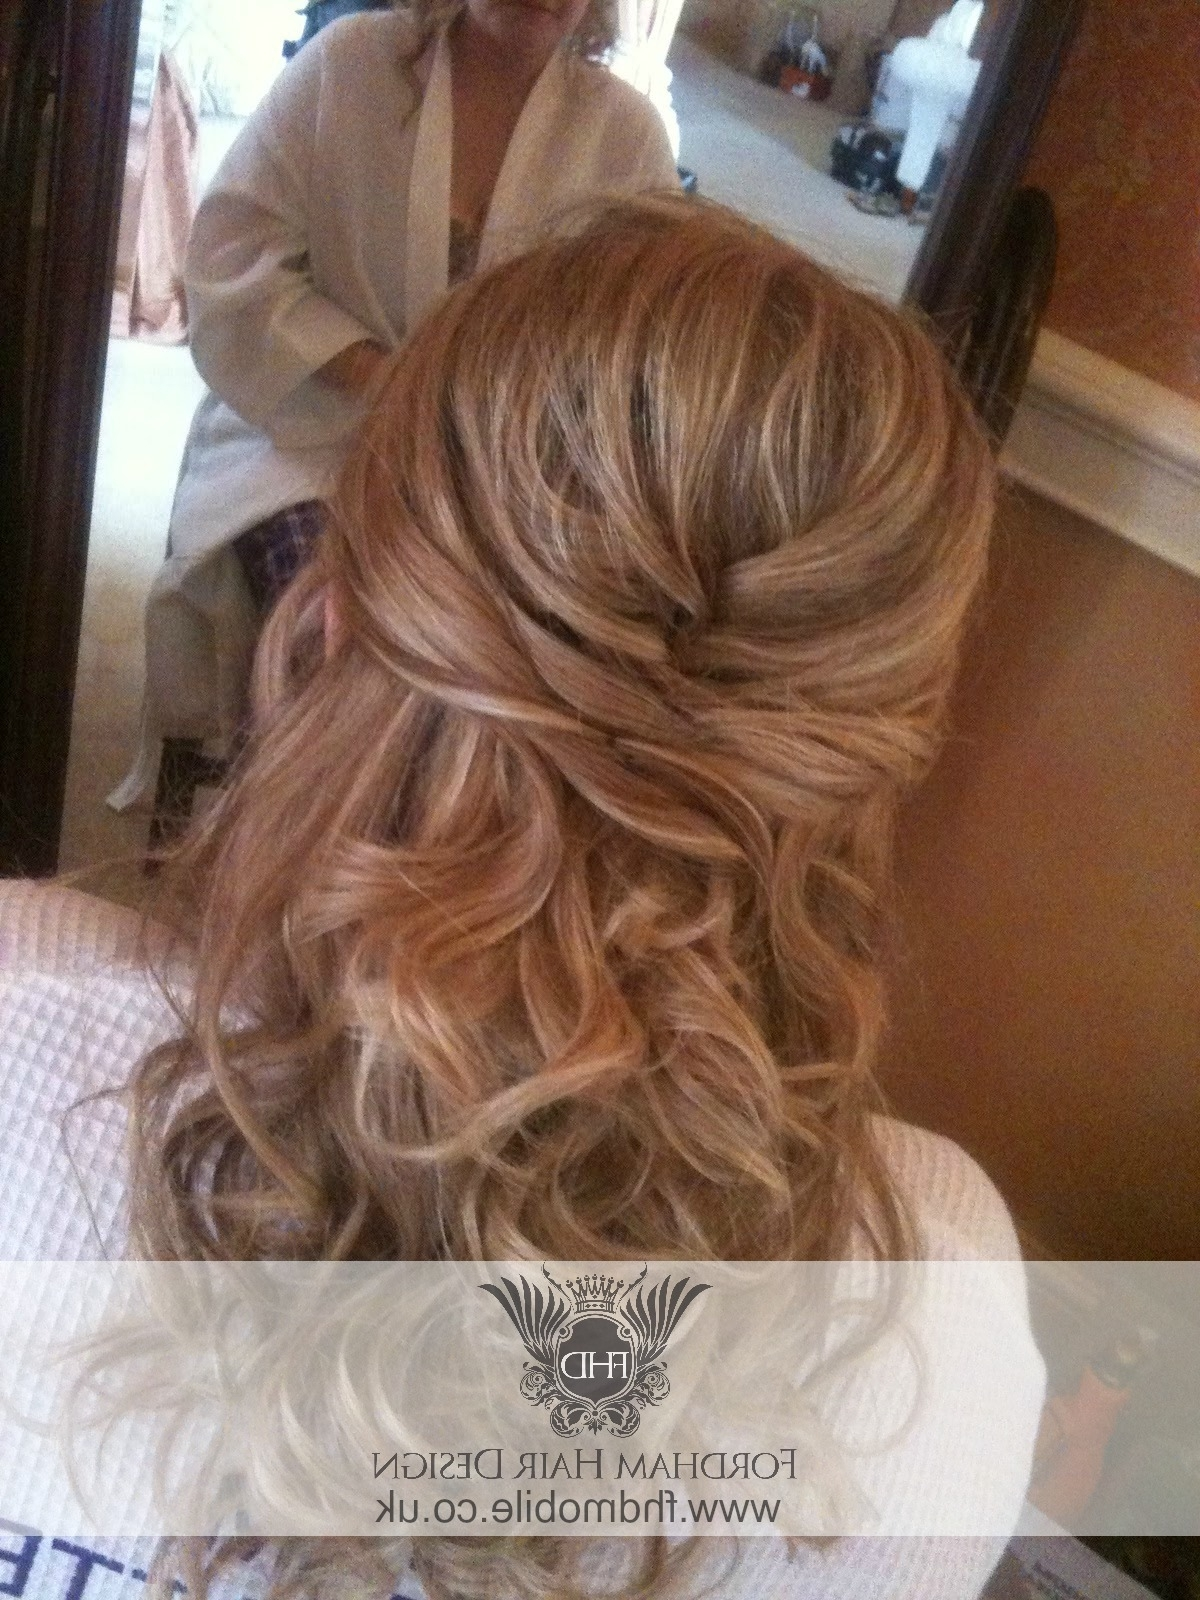 Hairstyles For Mother Of The Bride With Long Hair | Justswimfl Pertaining To Half Updos For Mother Of The Bride (View 3 of 15)